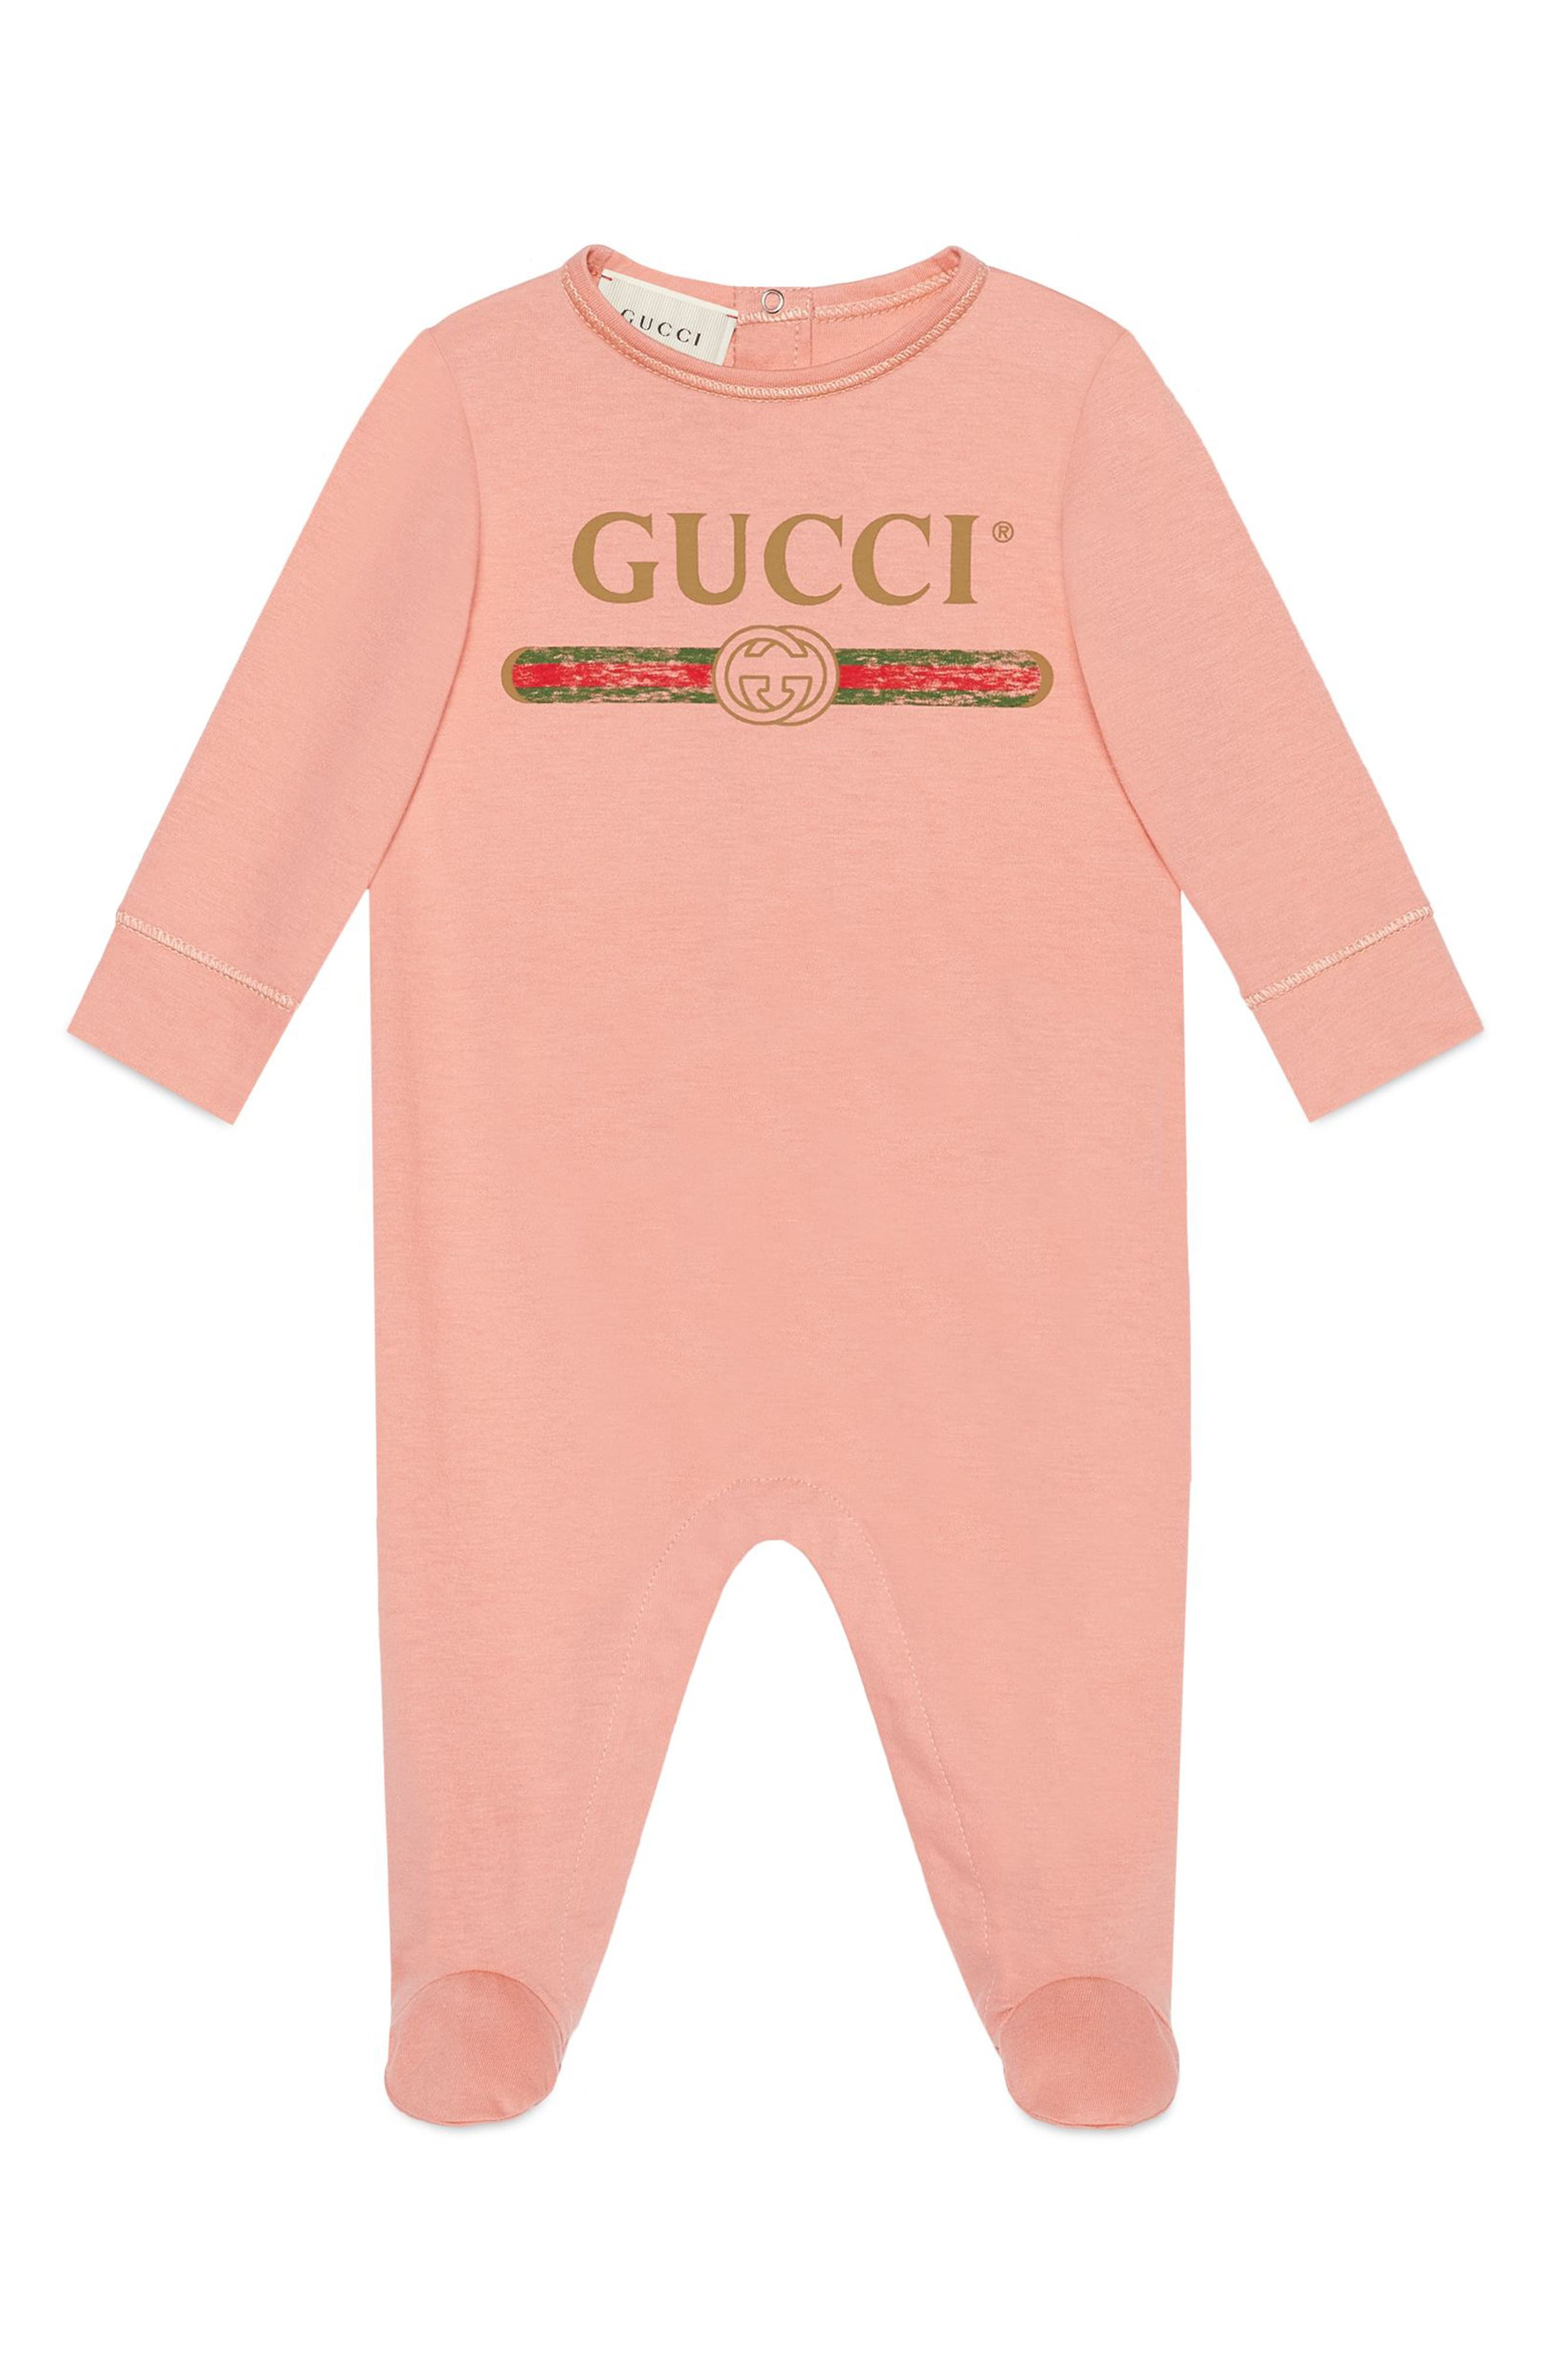 GUCCI, Logo Cotton Footie, Main thumbnail 1, color, PINK MULTI